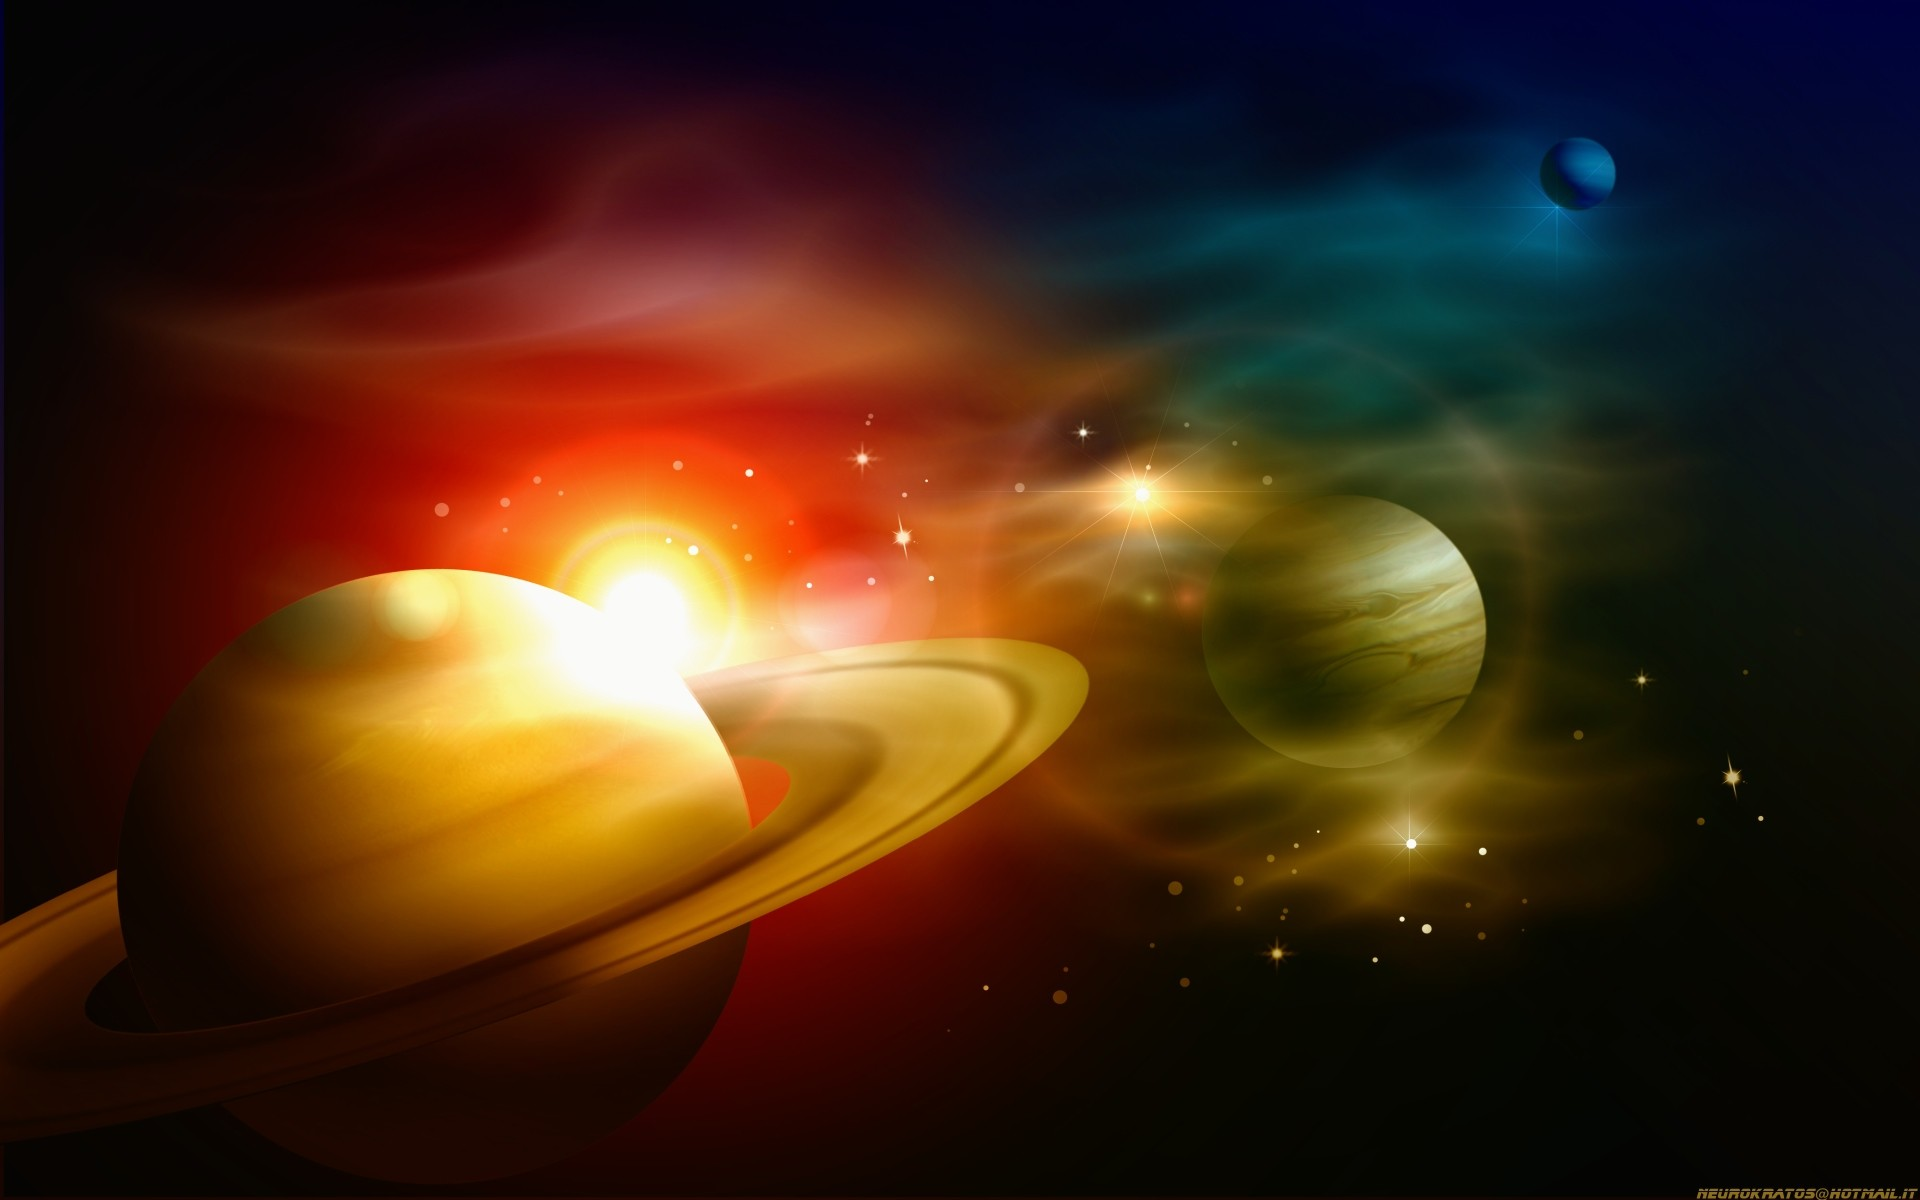 Space star sun pixel wallpaper solar planets wallpapers parallel system  large · Solar PlanetHd …